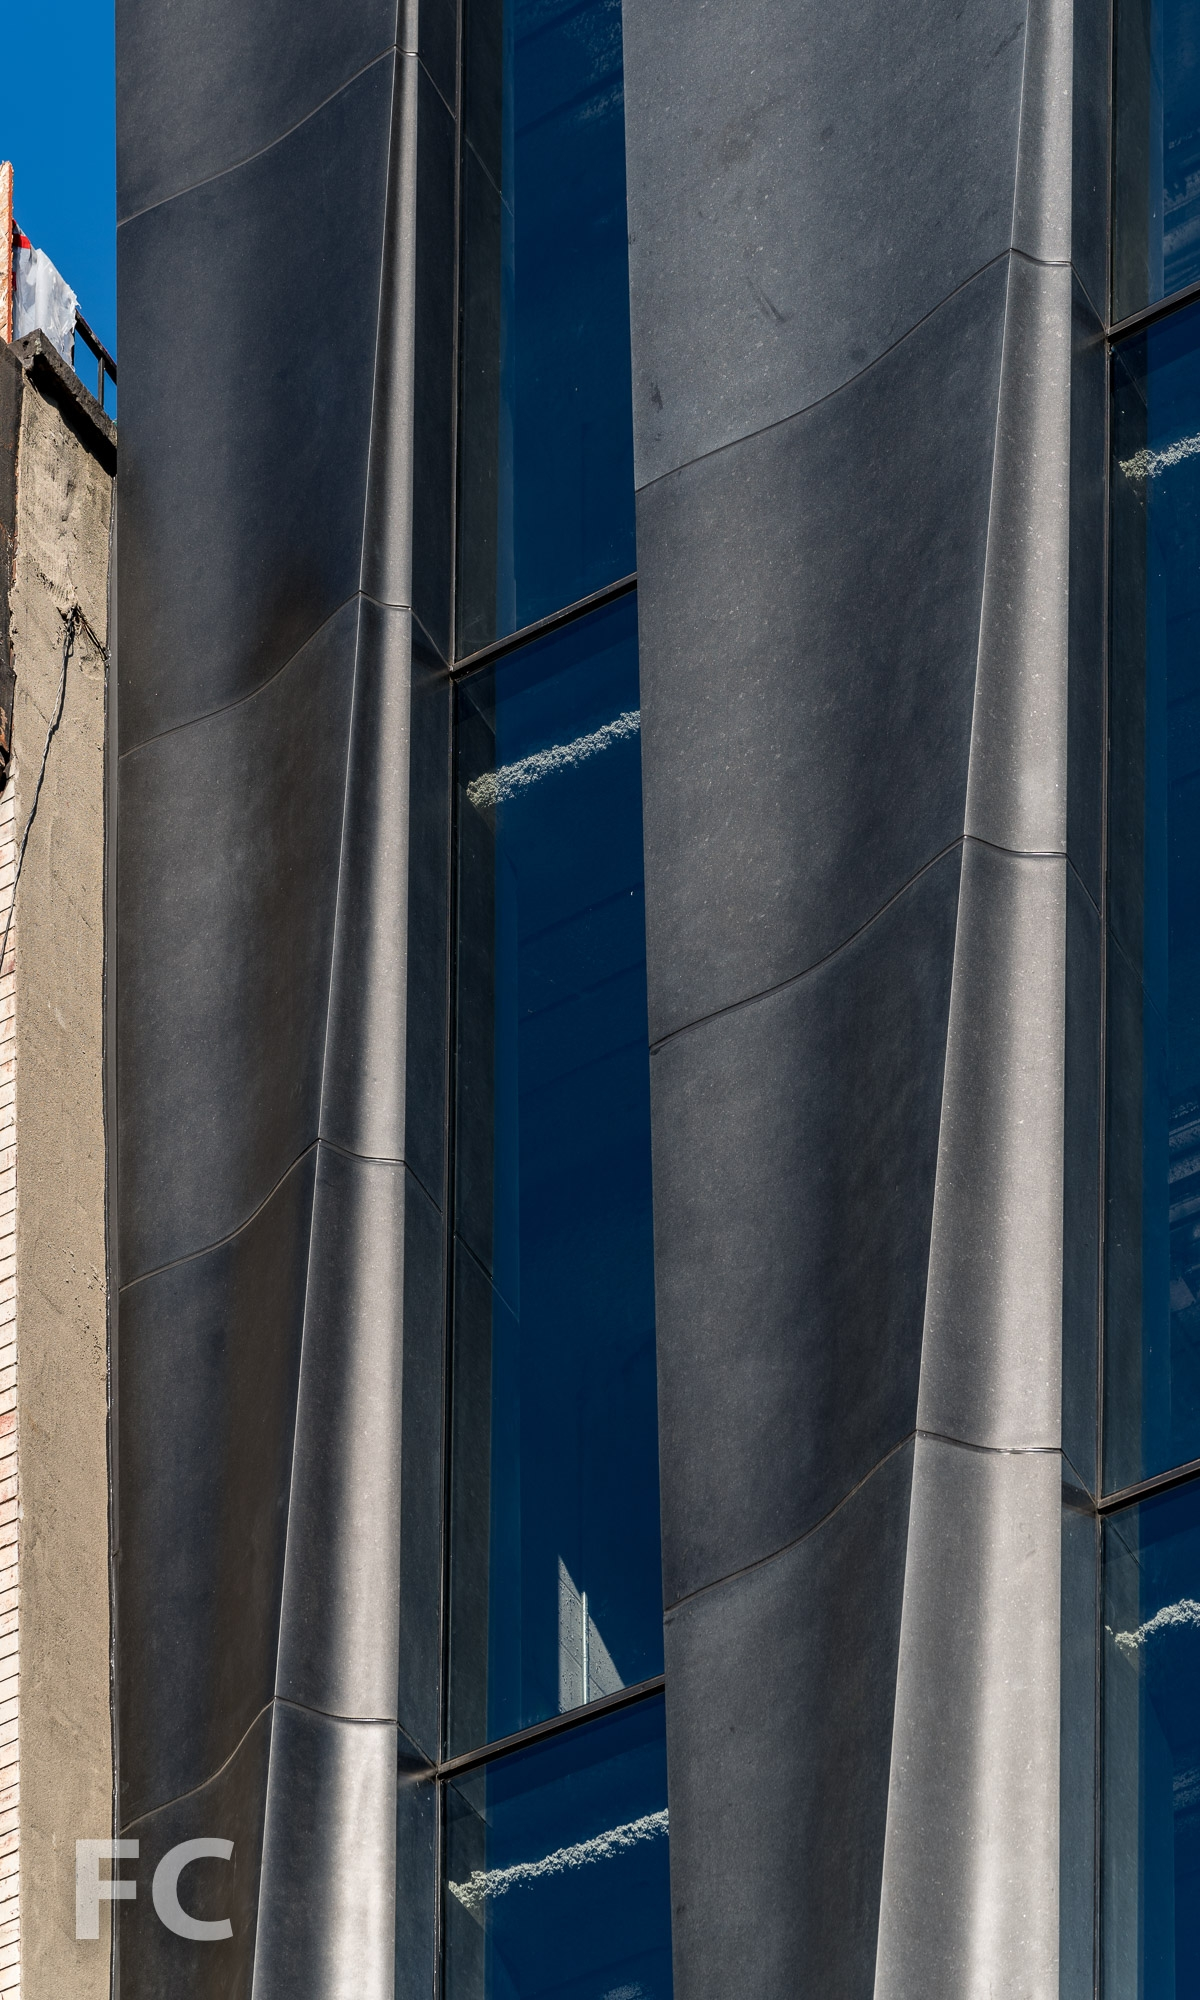 Close-up of the CNC milled stone and glass facade on Mott Street.